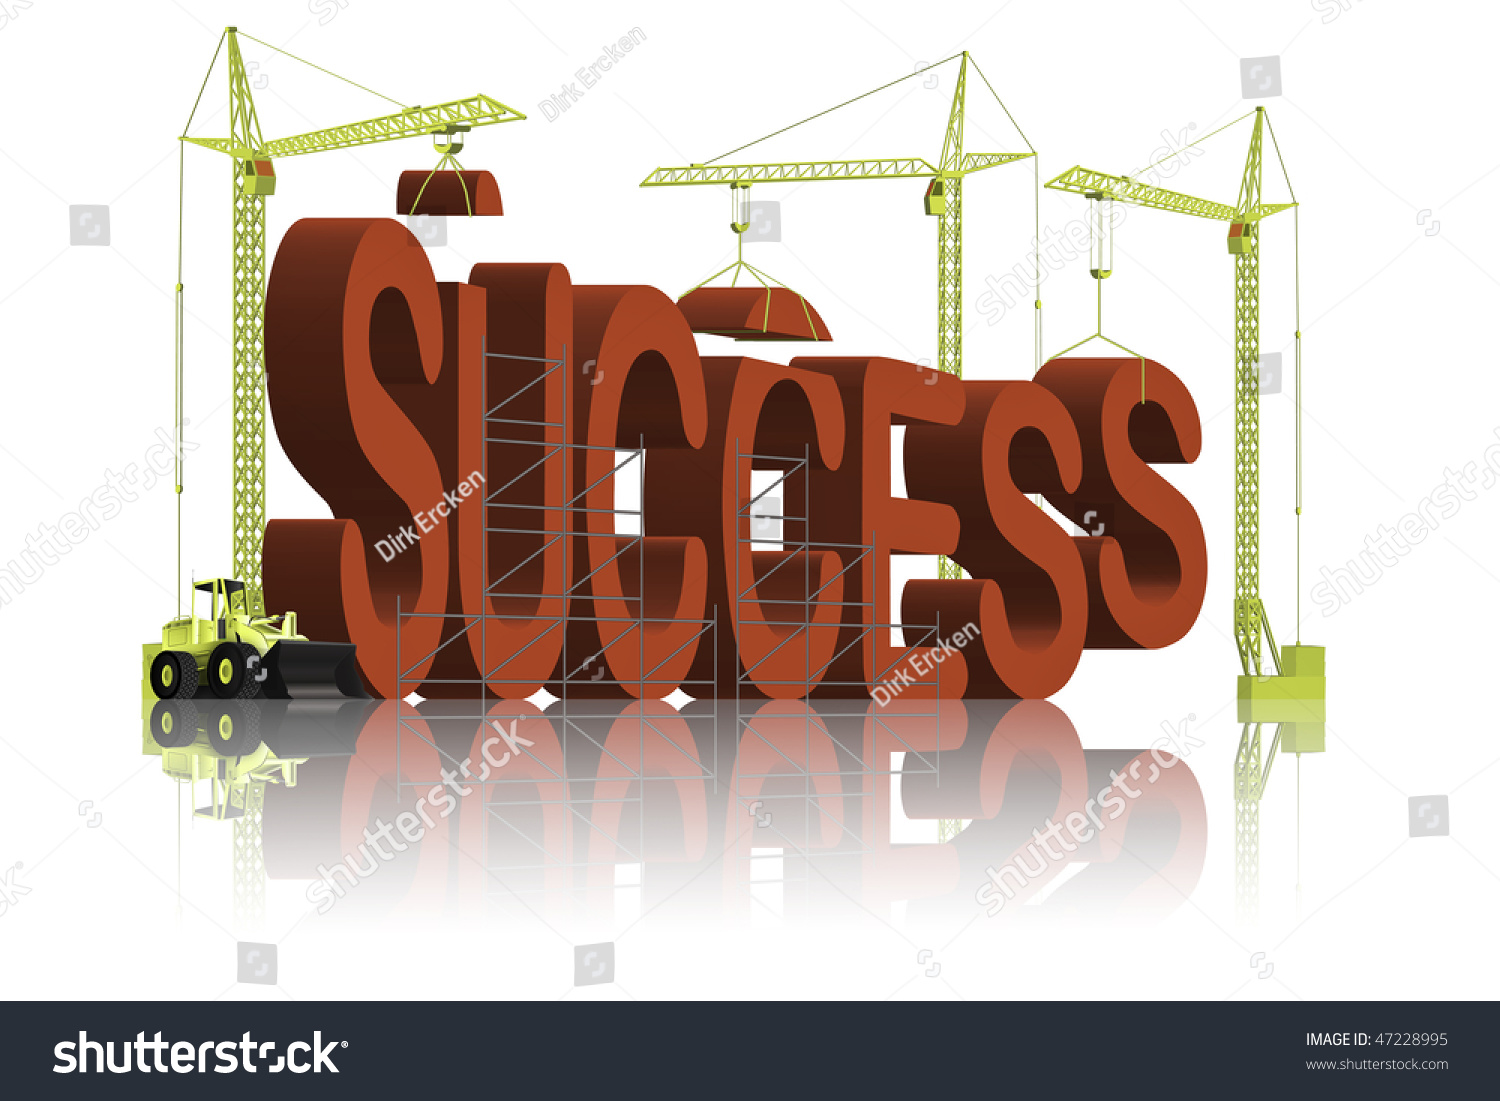 success building succeed your job career stock illustration success building succeed in your job or career train for victory and win work hard and